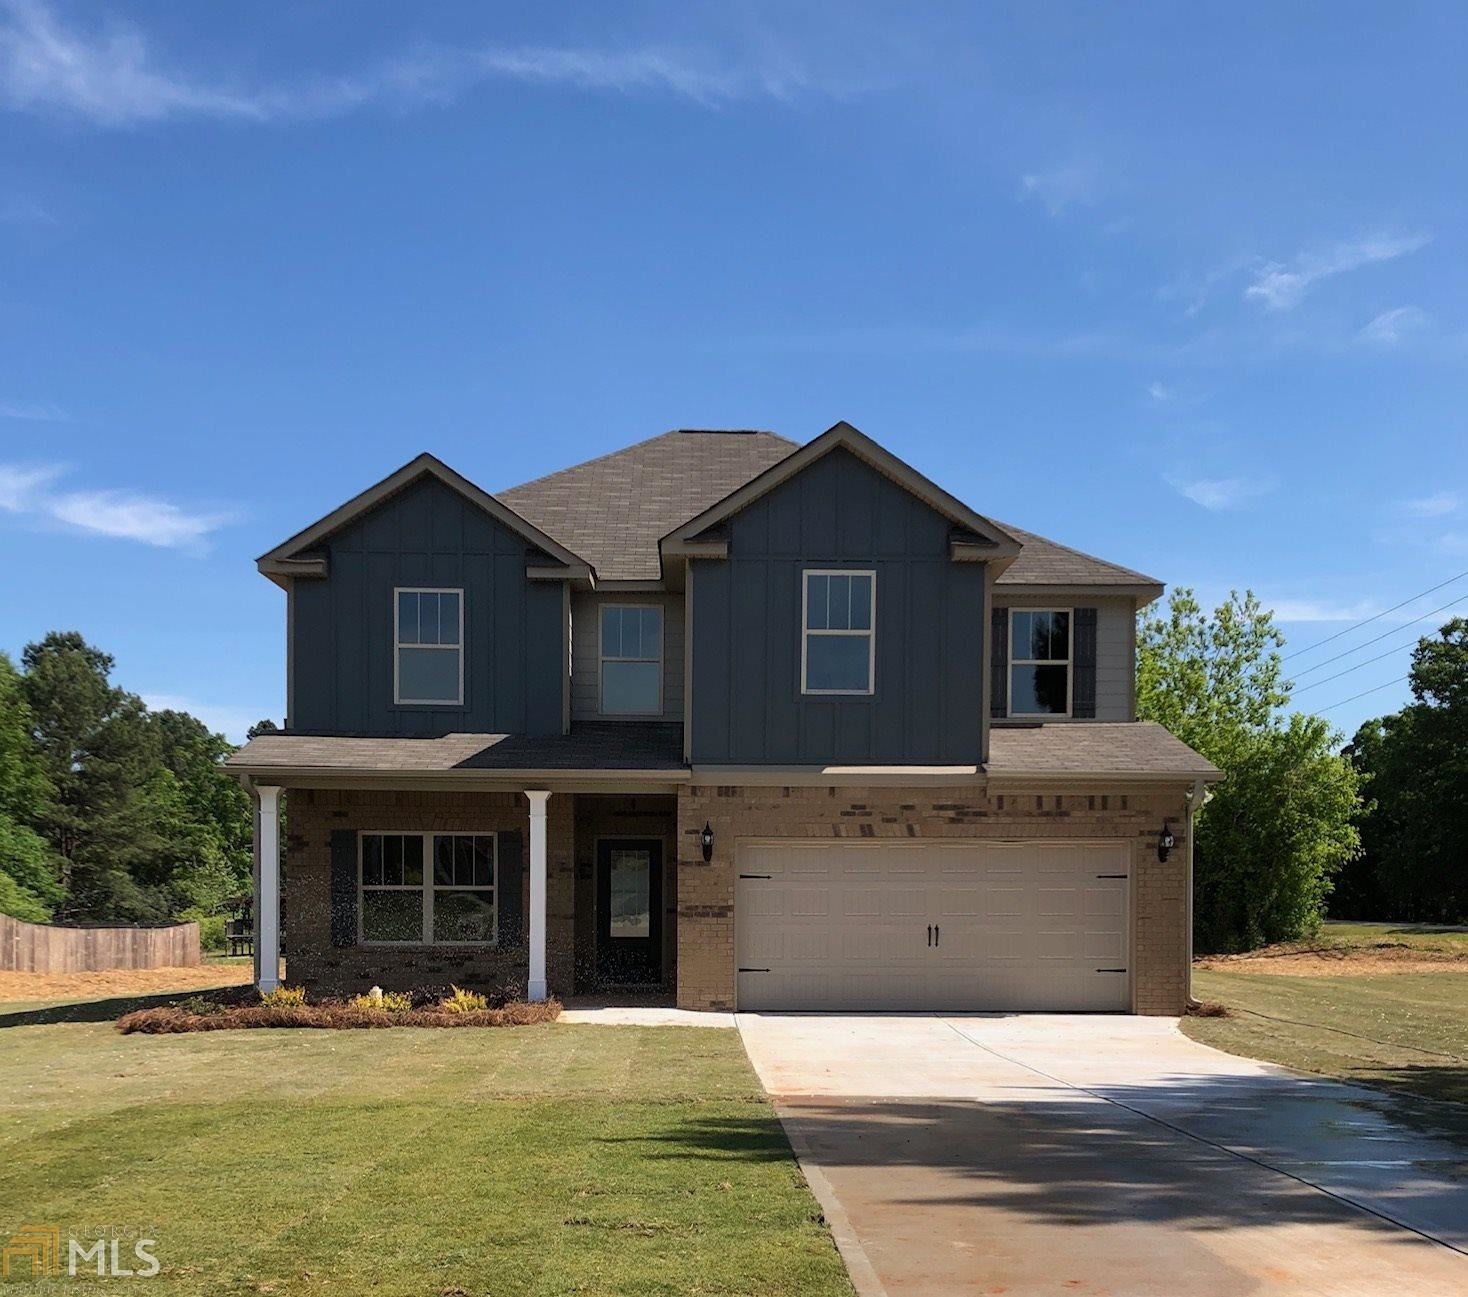 100 Clear Springs Dr Lot 25, Jackson, GA 30233 - #: 8668725